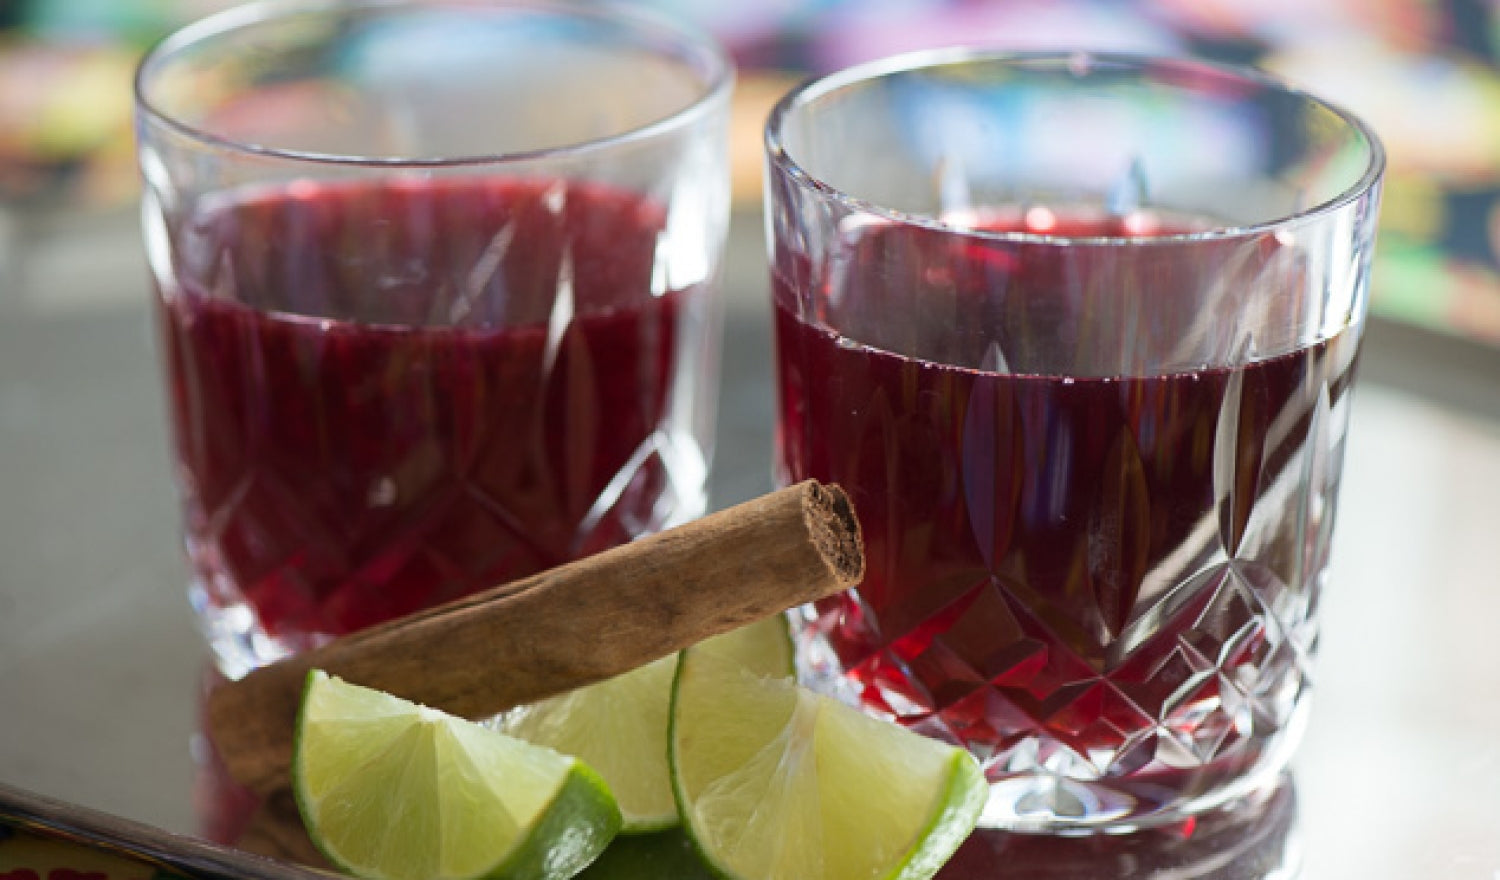 Hibiscus Flower Winter Warmer Cocktail Recipe